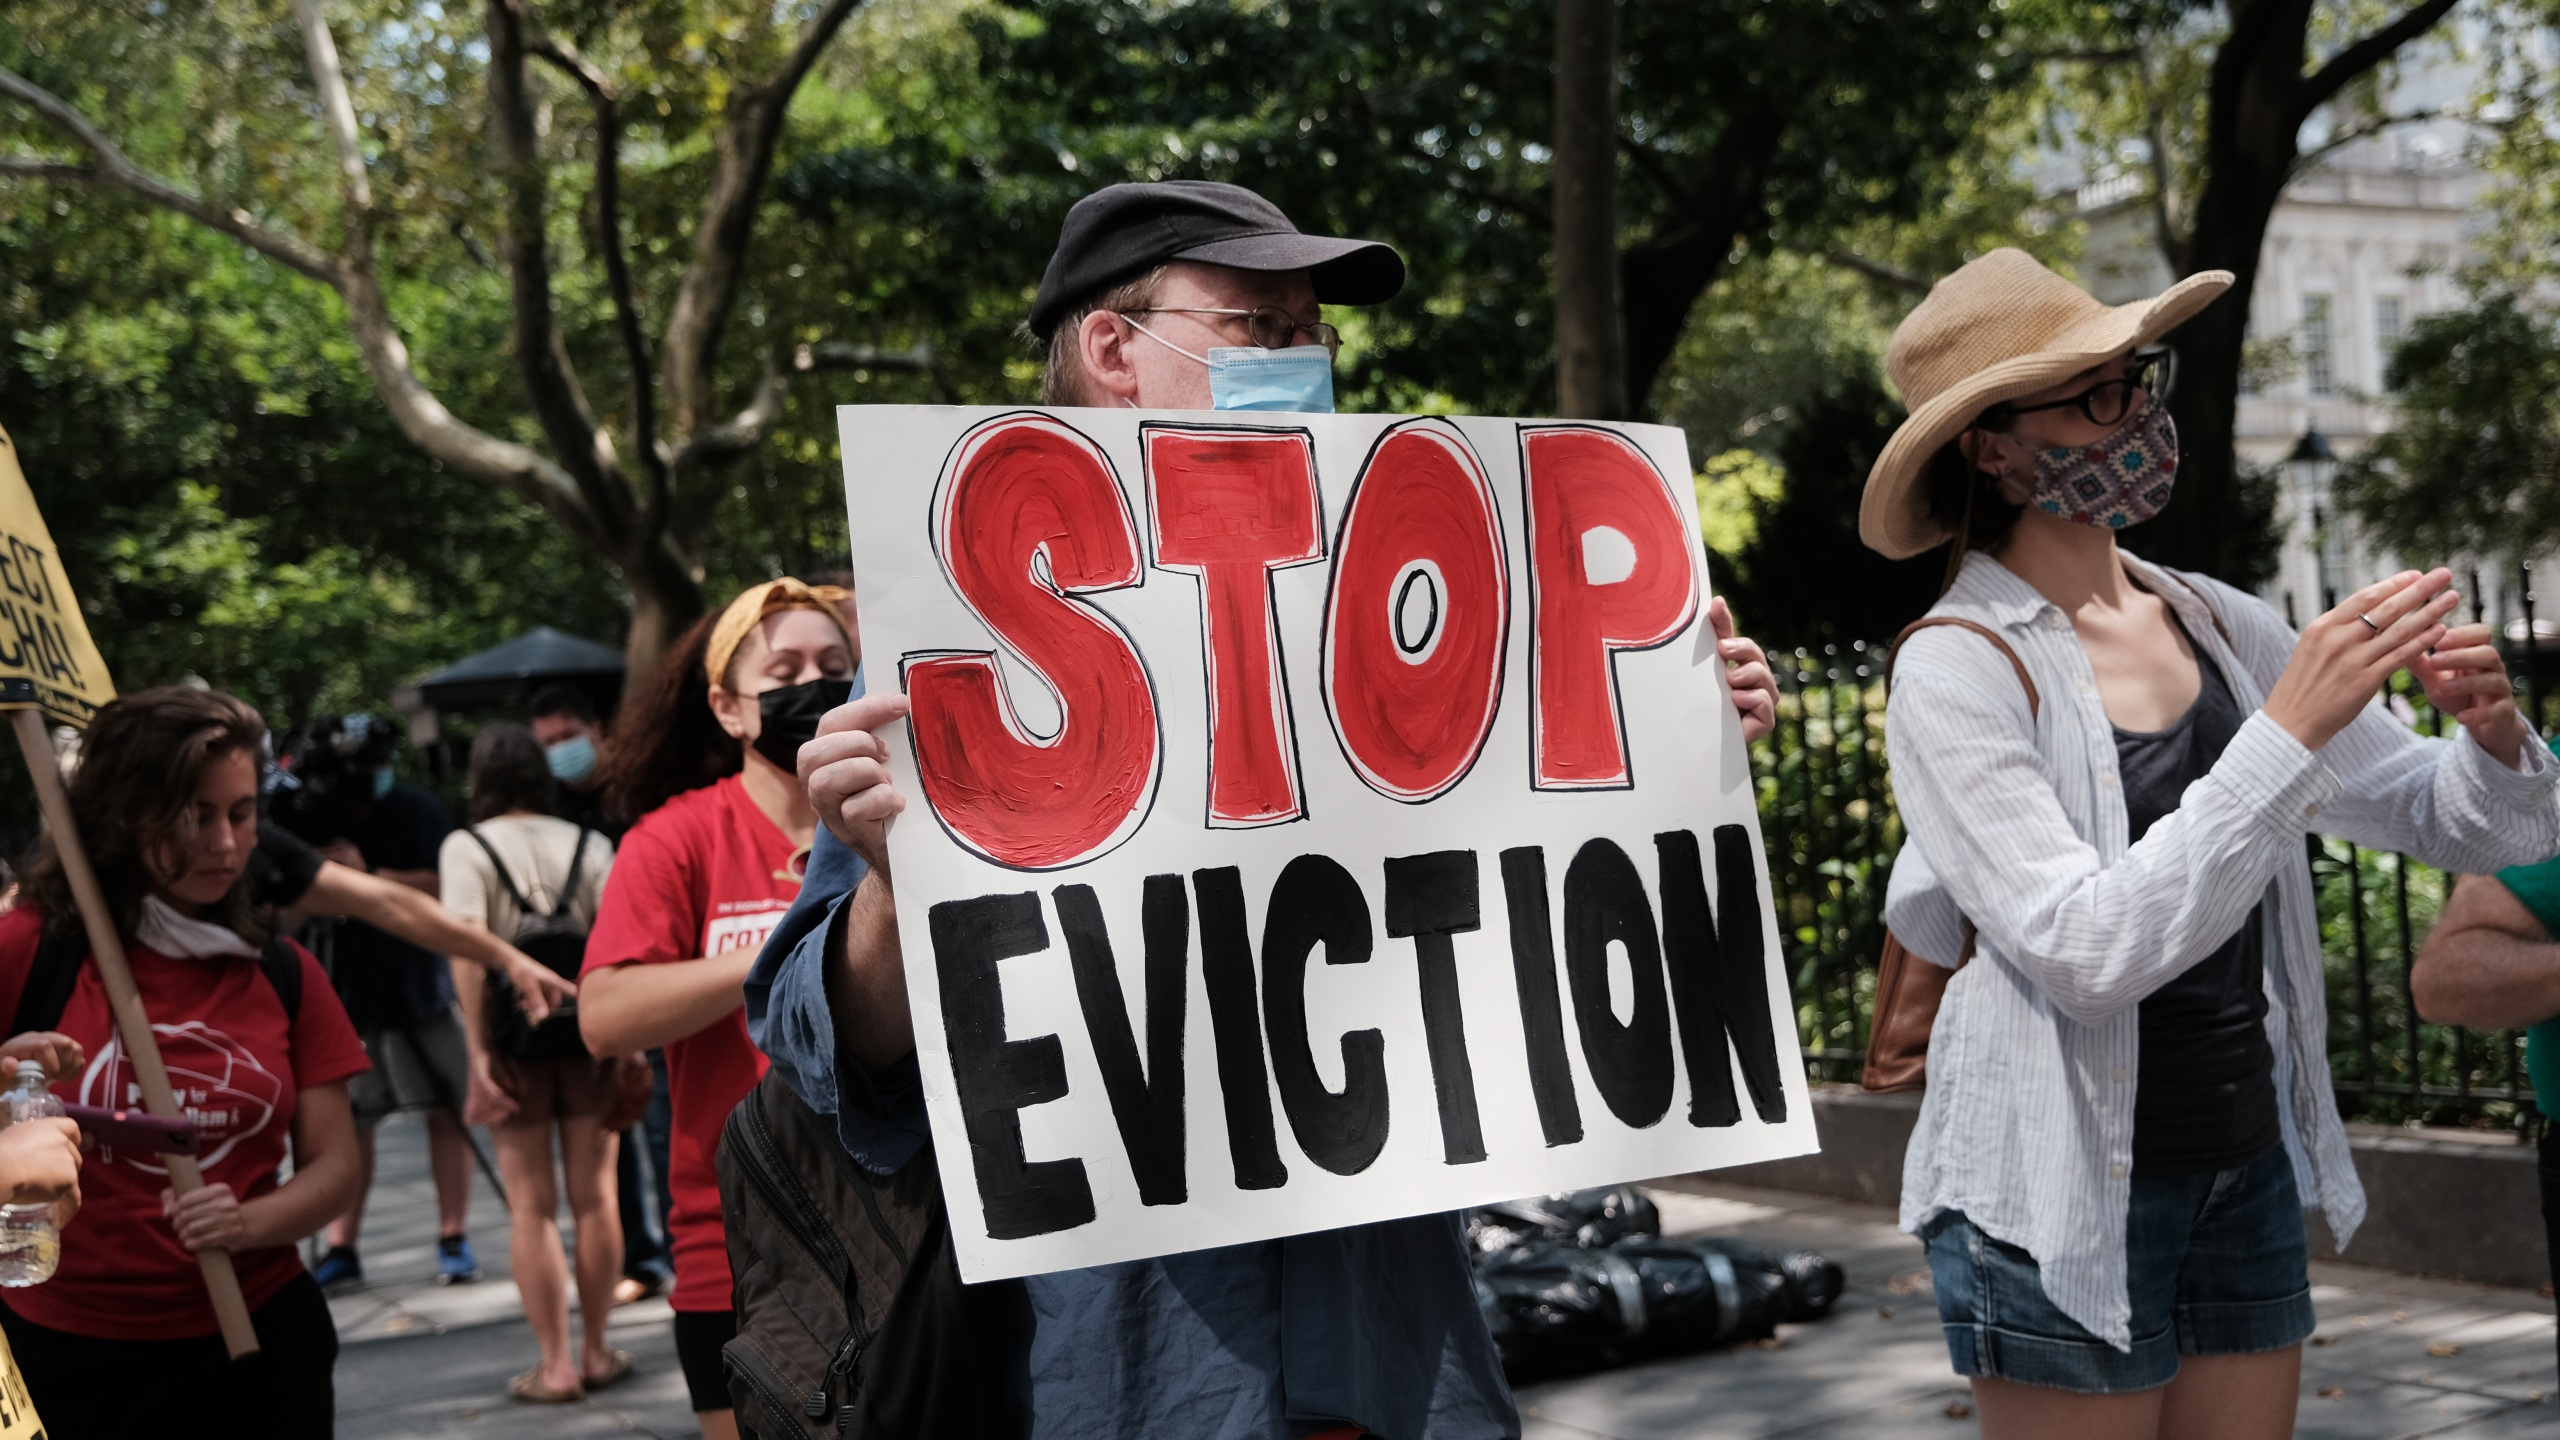 Activists hold a protest against evictions near City Hall on Aug. 11, 2021 in New York City. (Spencer Platt/Getty Images)